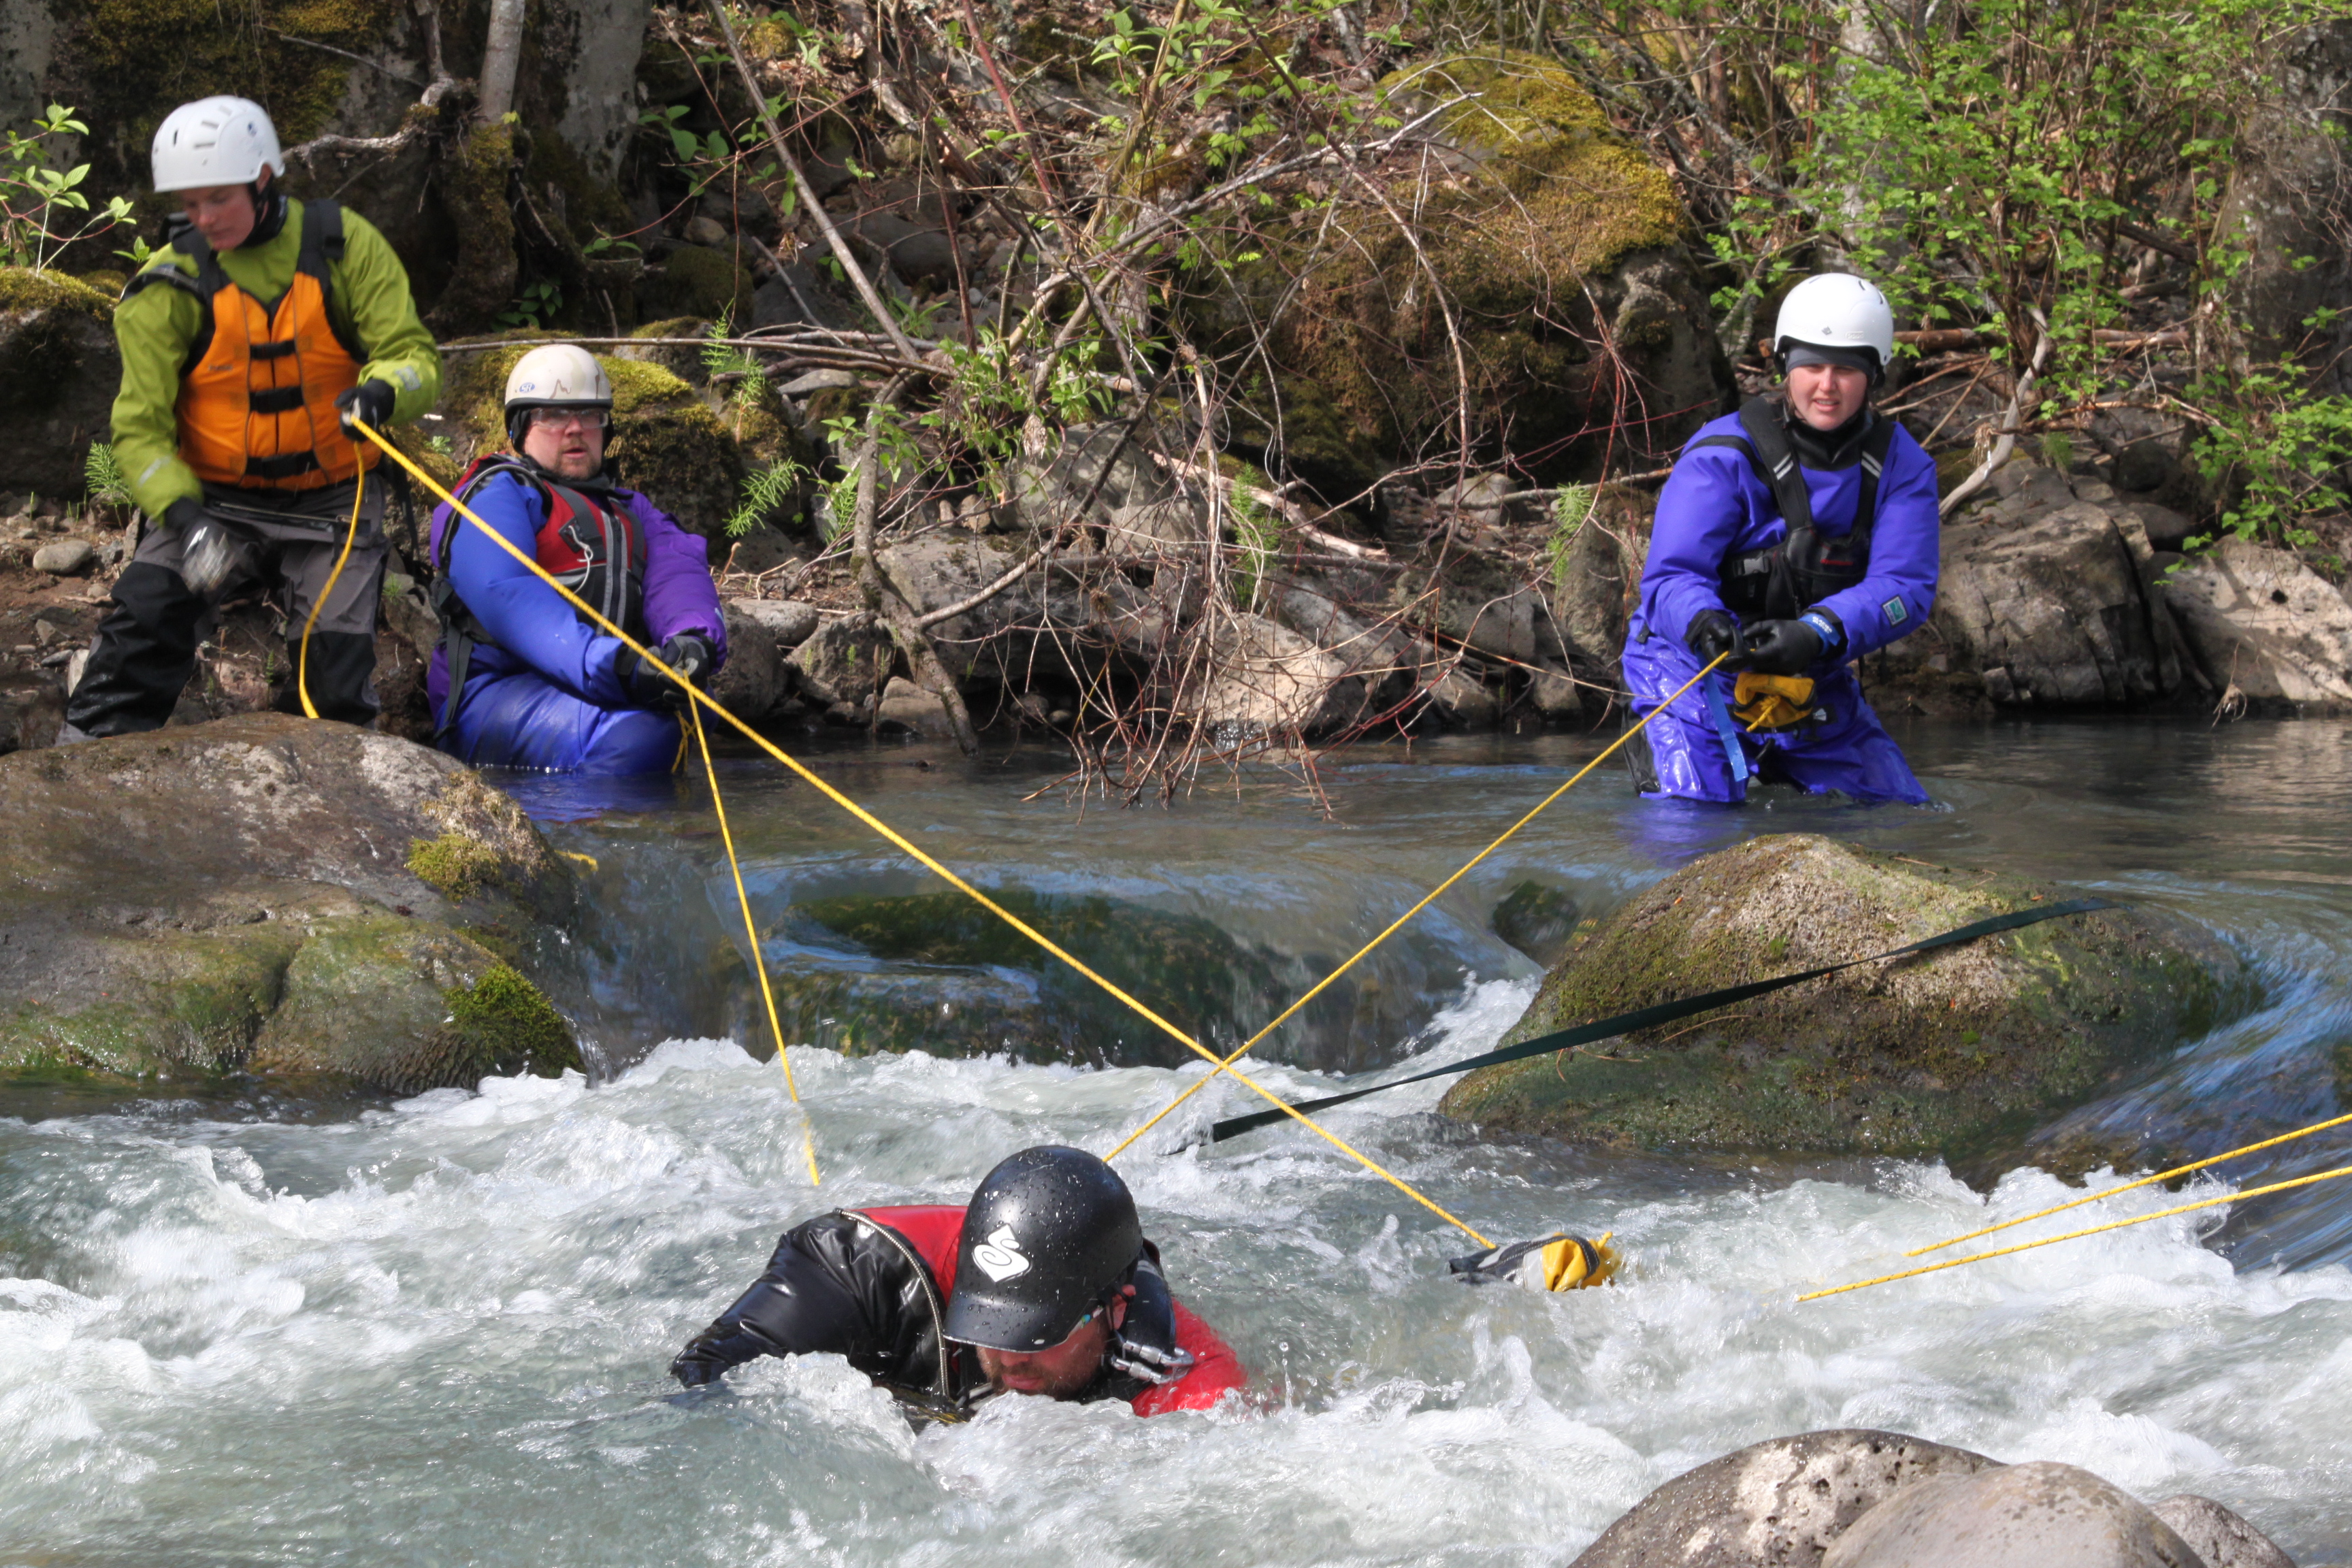 Swift Water River Rescue Course - Certification by Rescue3